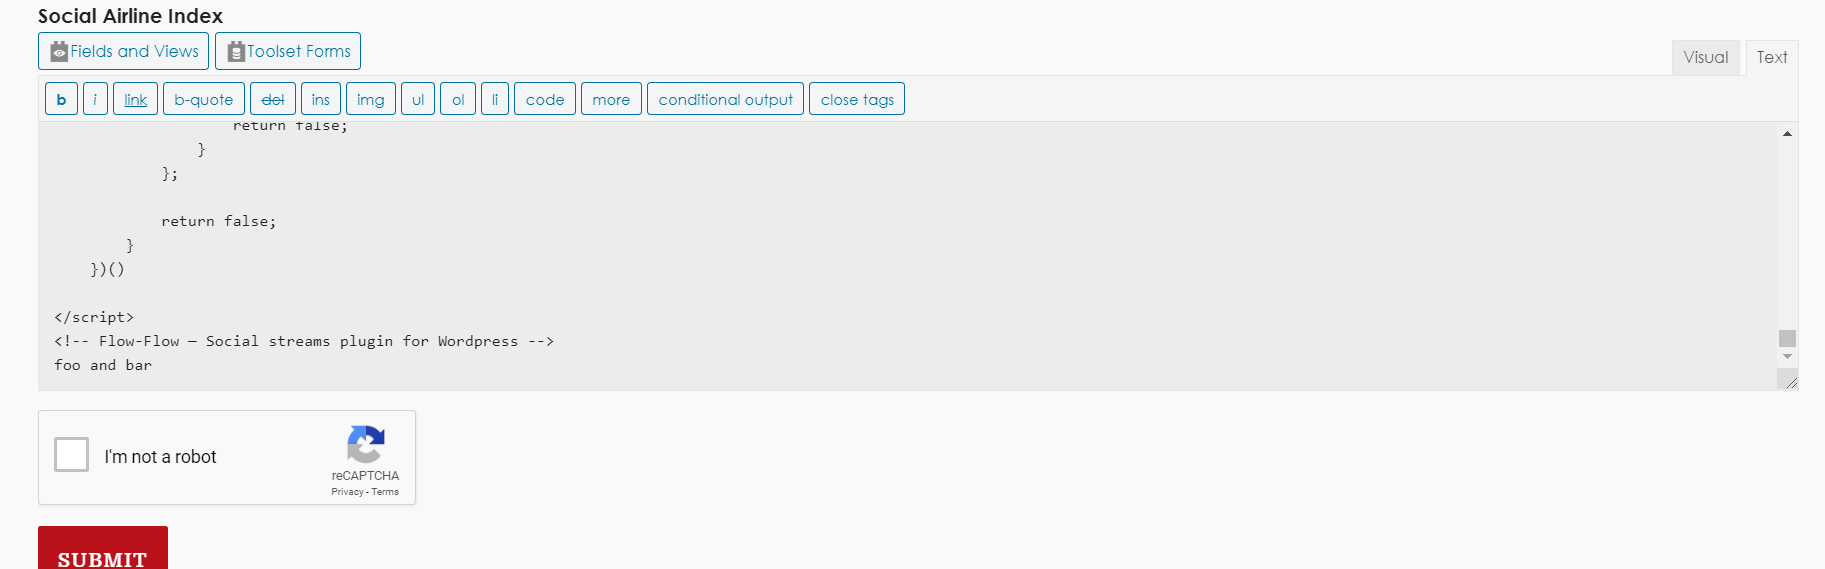 Capture4 - shortcode in frontend after refreshing the browser or resubmit the form again.PNG